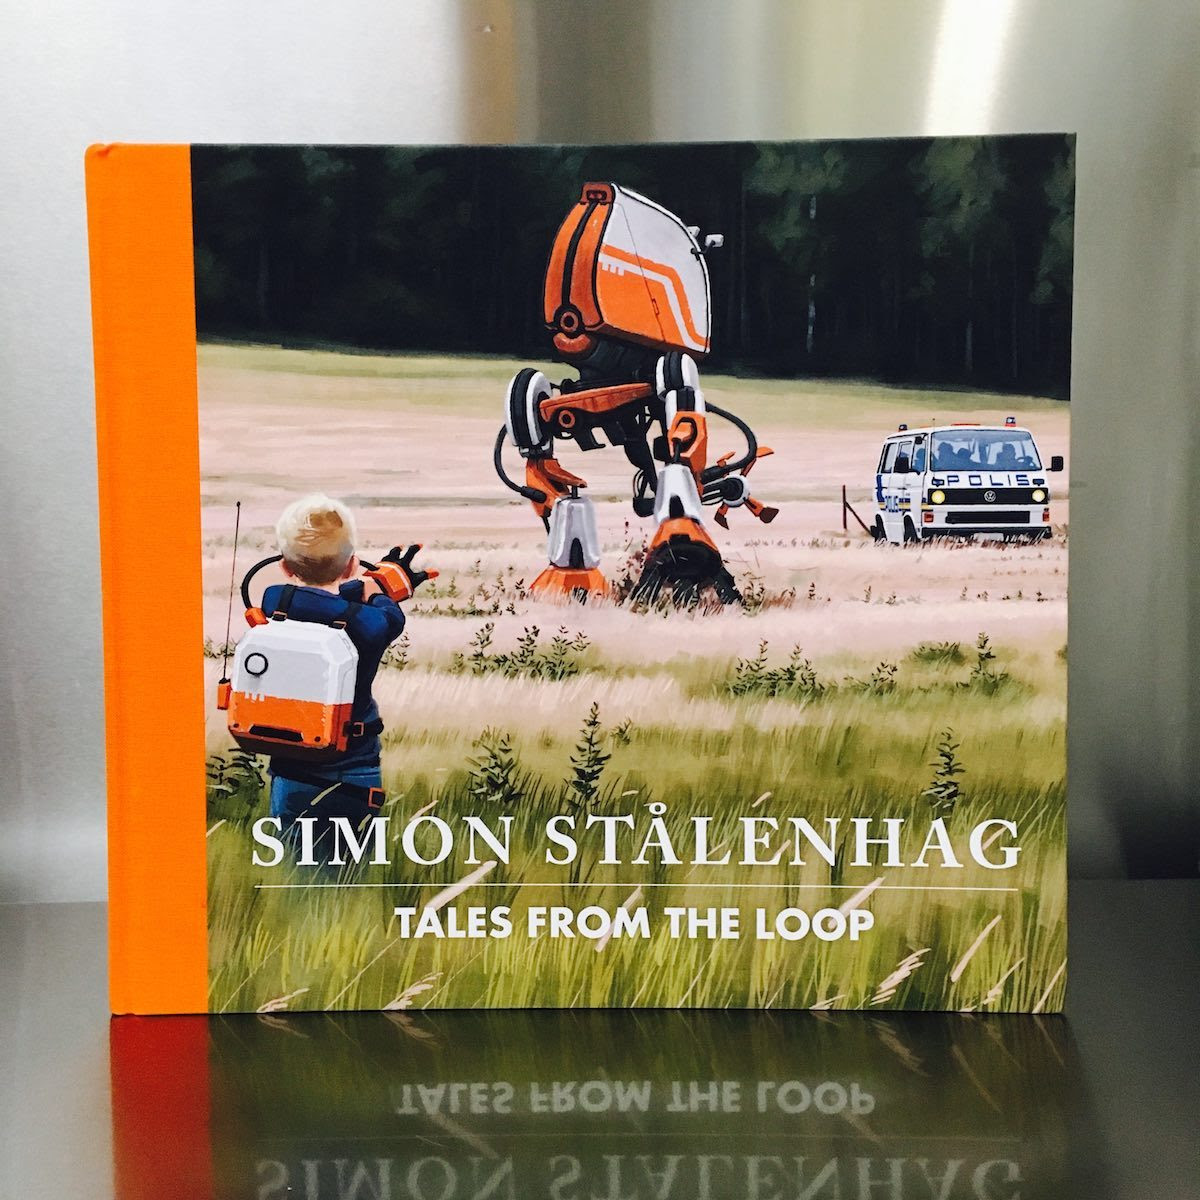 """Tales from the Loop – An eerie account of a physics research facility gone awry  Tales from the Loop  by Simon Stålenhag  Design Studio Press  2015, 128 pages, 10.1 x 11.2 x 0.7 inches  $33  Buy a copy on Amazon  Unfamiliar with sci-fi artist Simon Stålenhag, I was sucked into his eerie dystopian history the instant I cracked open Tales from the Loop. His hyper-real digital paintings depict beautiful Swedish country towns where snow falls in the winter and children play in nature. But each of these pastoral scenes are jarring, with intrusive machines, robots, discarded equipment, and power lines upstaging the otherwise serene landscape.  The book explains that these paintings were inspired by childhood memories of the author, who grew up in a large area of Sweden that housed an underground experimental physics research facility known as The Loop. Alongside each painting is a short essay from the author's memory. For instance, the three cooling towers in the photo above were built to release heat from the core of the Loop. The towers, which """"started like a deep vibration in the ground that slowly rose to three horn-like blasts,"""" remind Stålenhag of a miserable day he had with a boy named Ossian, who had lured him to his house to play Crash Test Dummies, but ended up bullying him with the help of his brother until Stålenhag went home in tears.  Each painting is accompanied by one of these short yet captivating stories, and their detailed, relatable quality had me going. As I read about Stålenhag and his best friend Olof sneaking off with a boat on a nice summer day to a disturbing machine-littered swimming pond, I kept thinking, """"I must go online and research the Loop! How could I have never heard about this creepy place?"""" Then I quickly got to the robots. Huge dinosaur and prehistoric animal robots. And towering two and four-legged machine robots, crushing everything in their paths. Suddenly, with a """"Wait a minute!"""" moment, I knew I'd been had. The same way I was dup"""